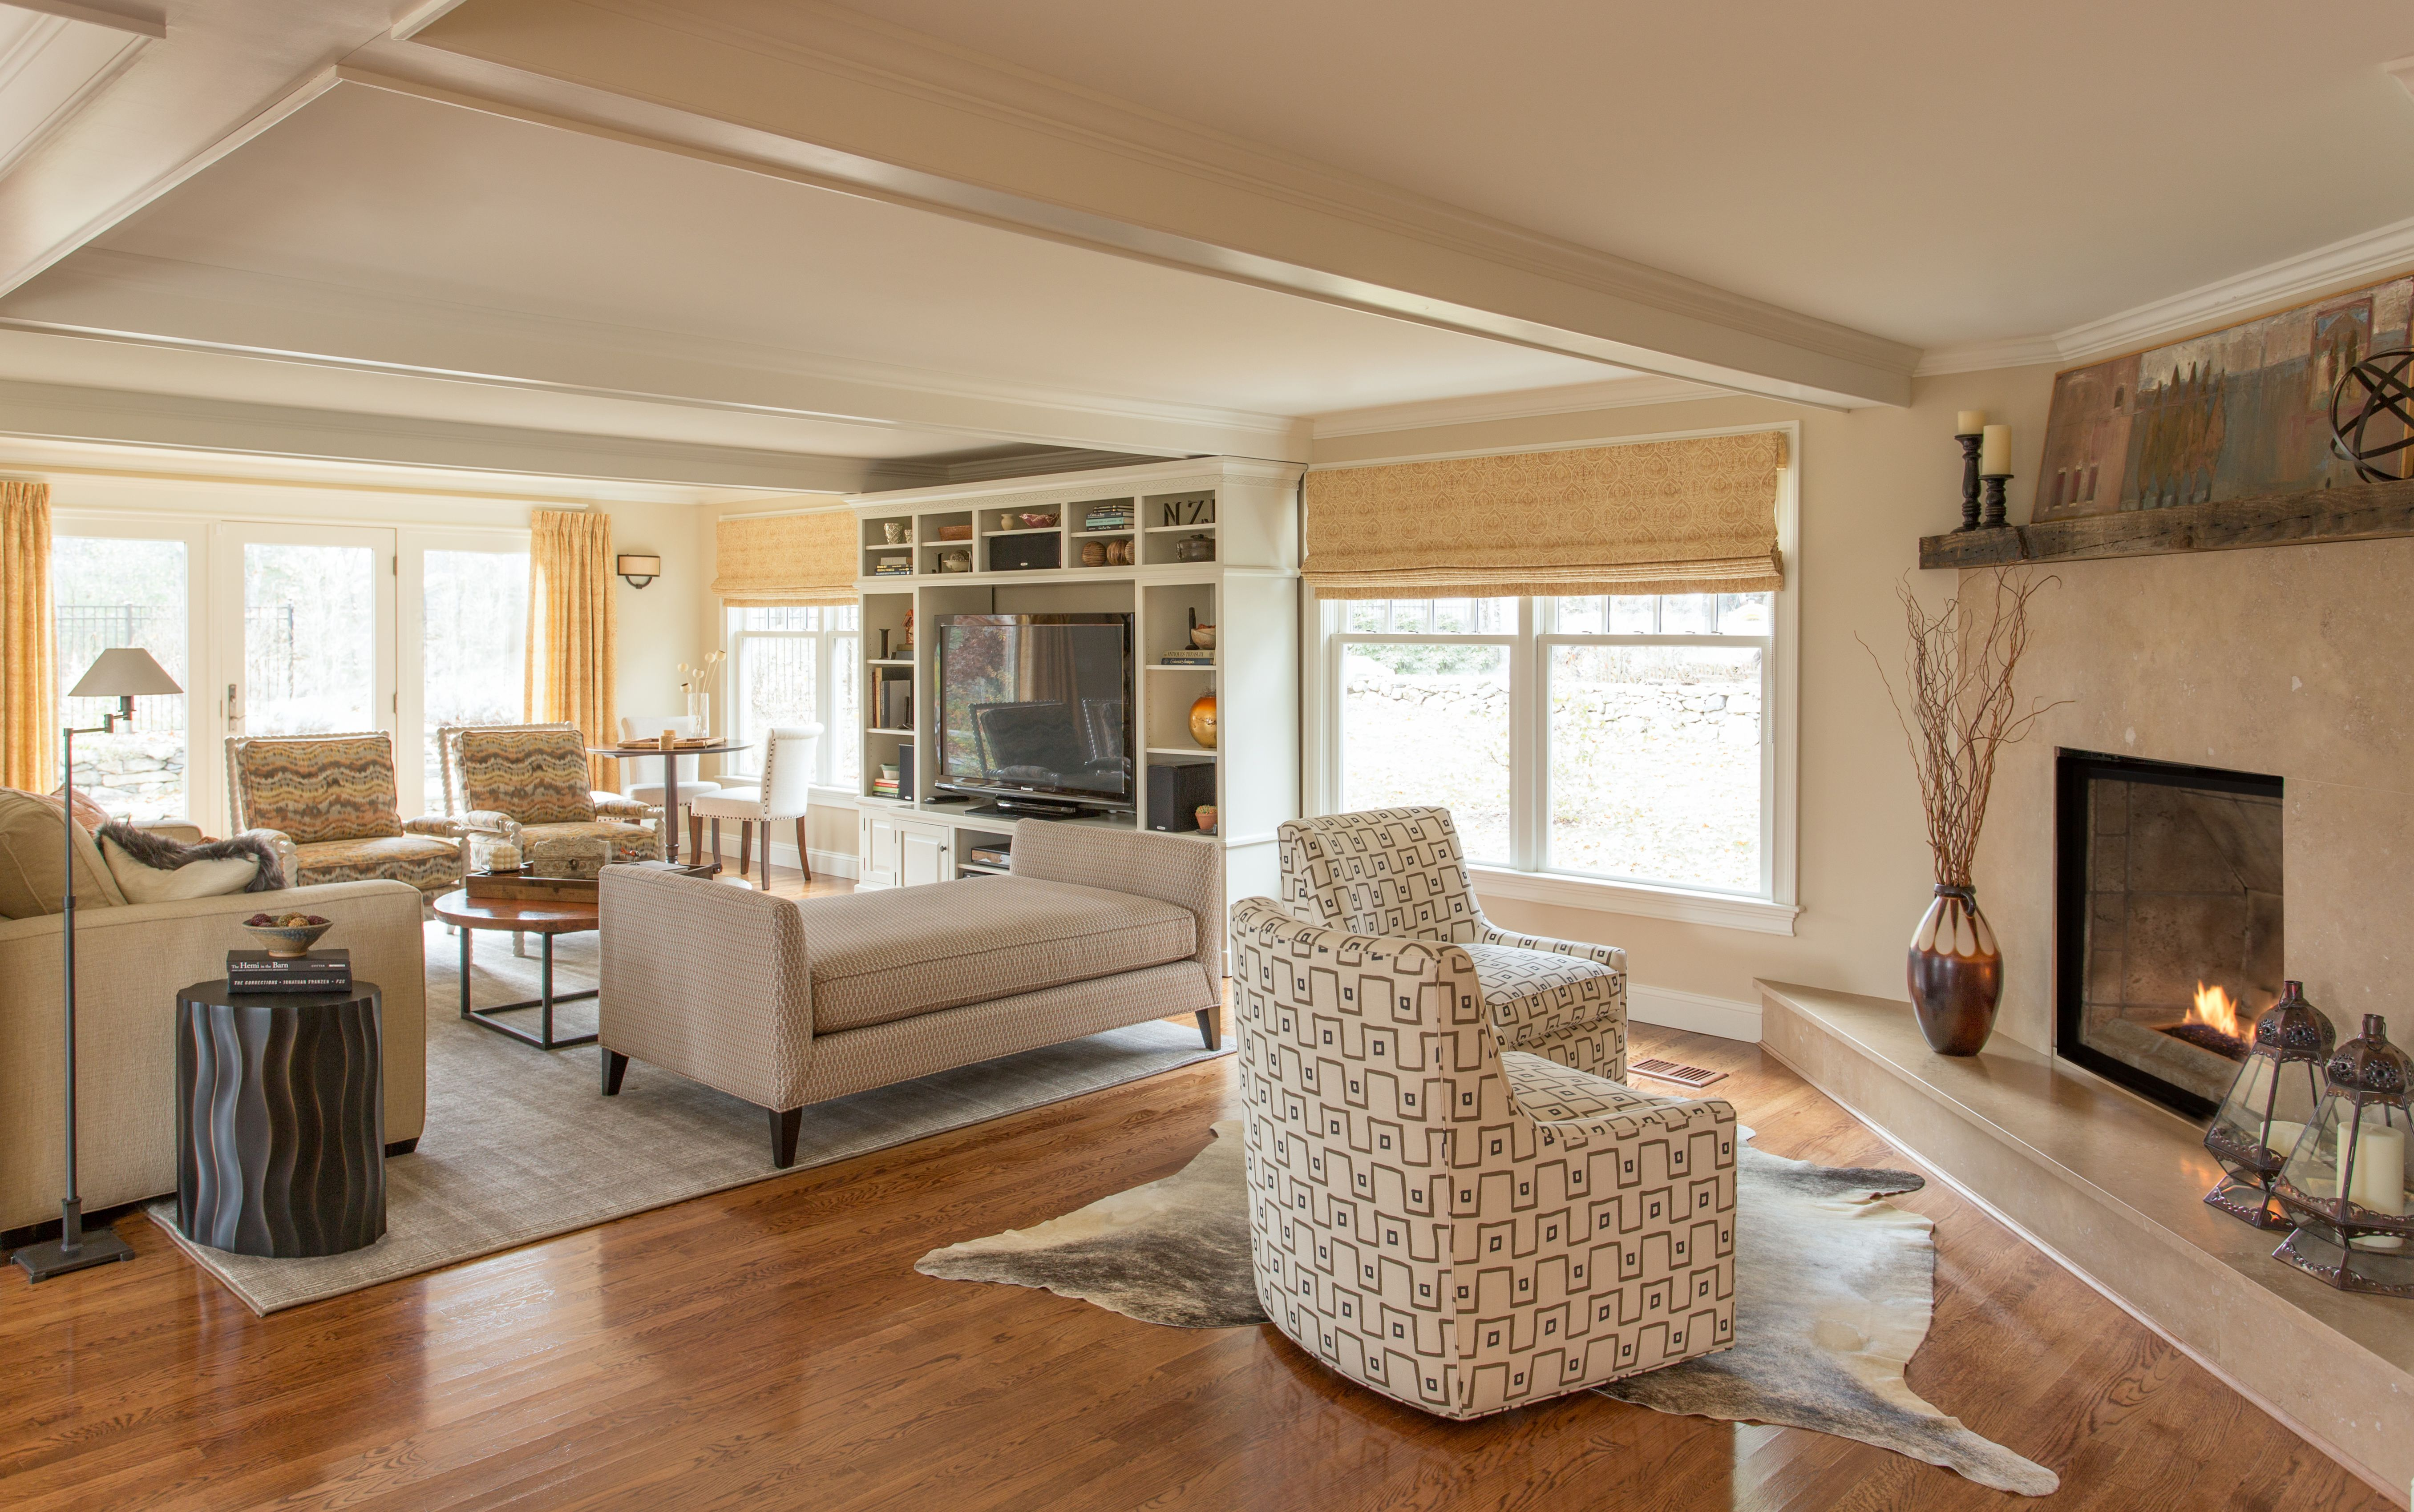 Project Reveal: Brown Moves Down, A Home Lights Up | Kelly Rogers Interiors | Interiors for Families